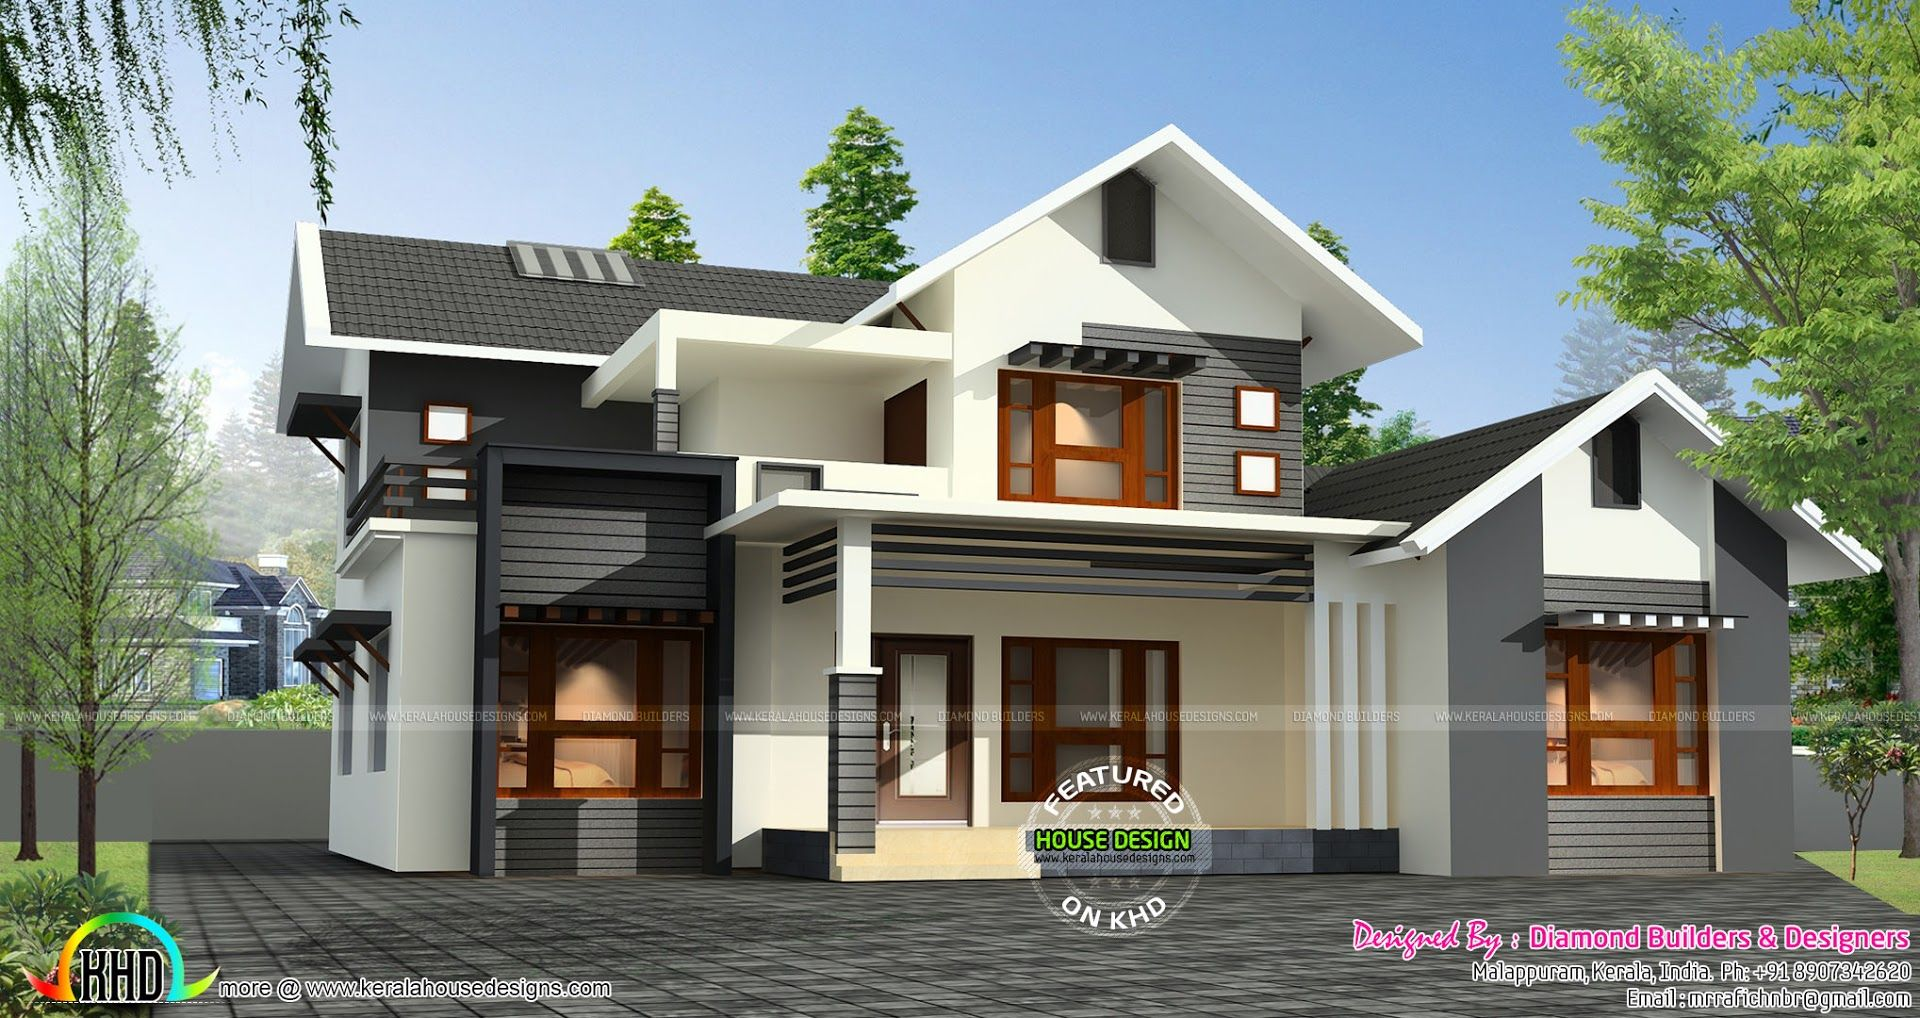 Sloping Roof Mix 1500 Sq Ft Home Kerala House Design Modern House Design House Remodeling Plans